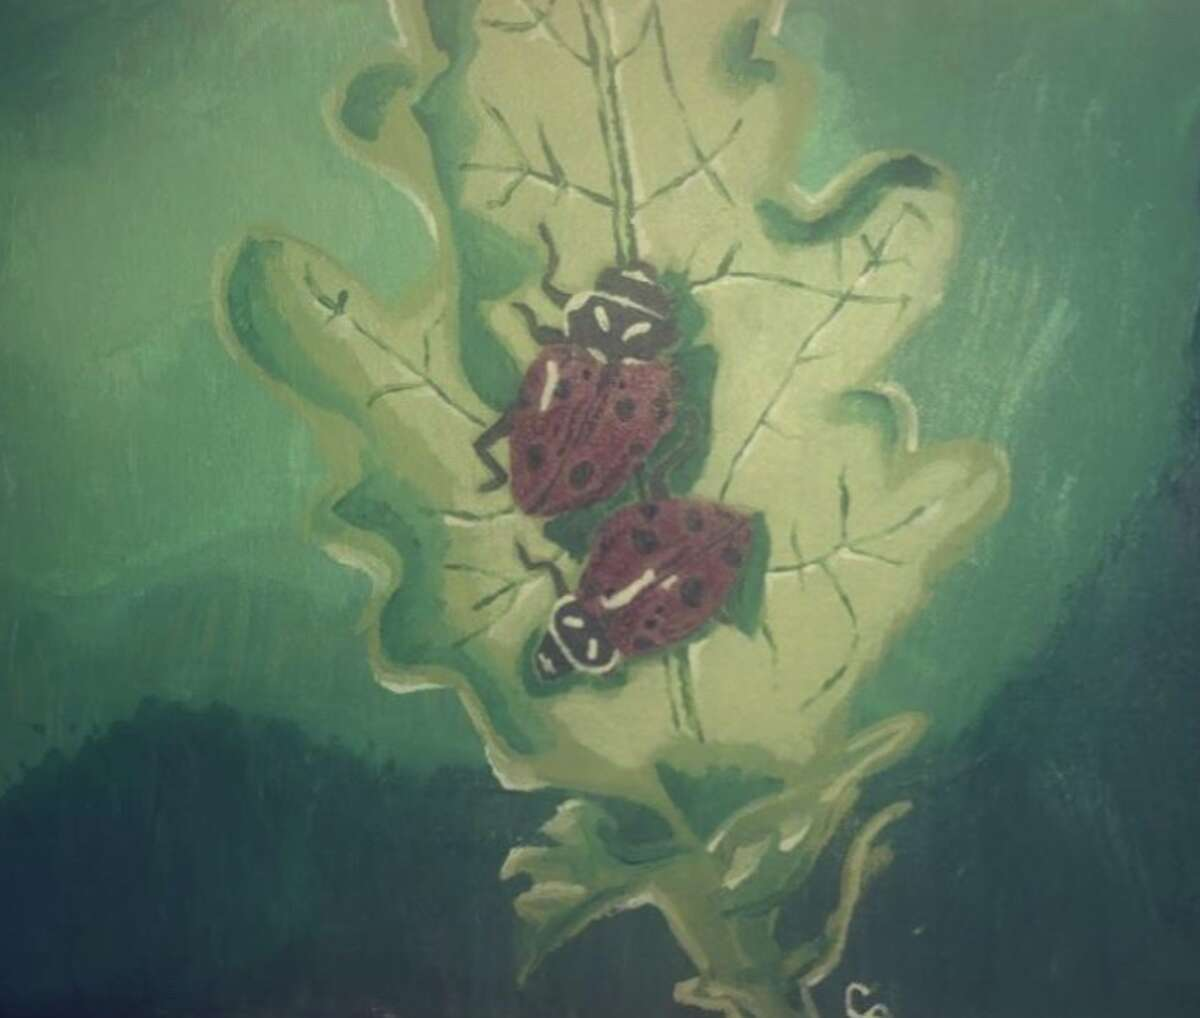 A painting by Caitlyn Efner responding to the theme of